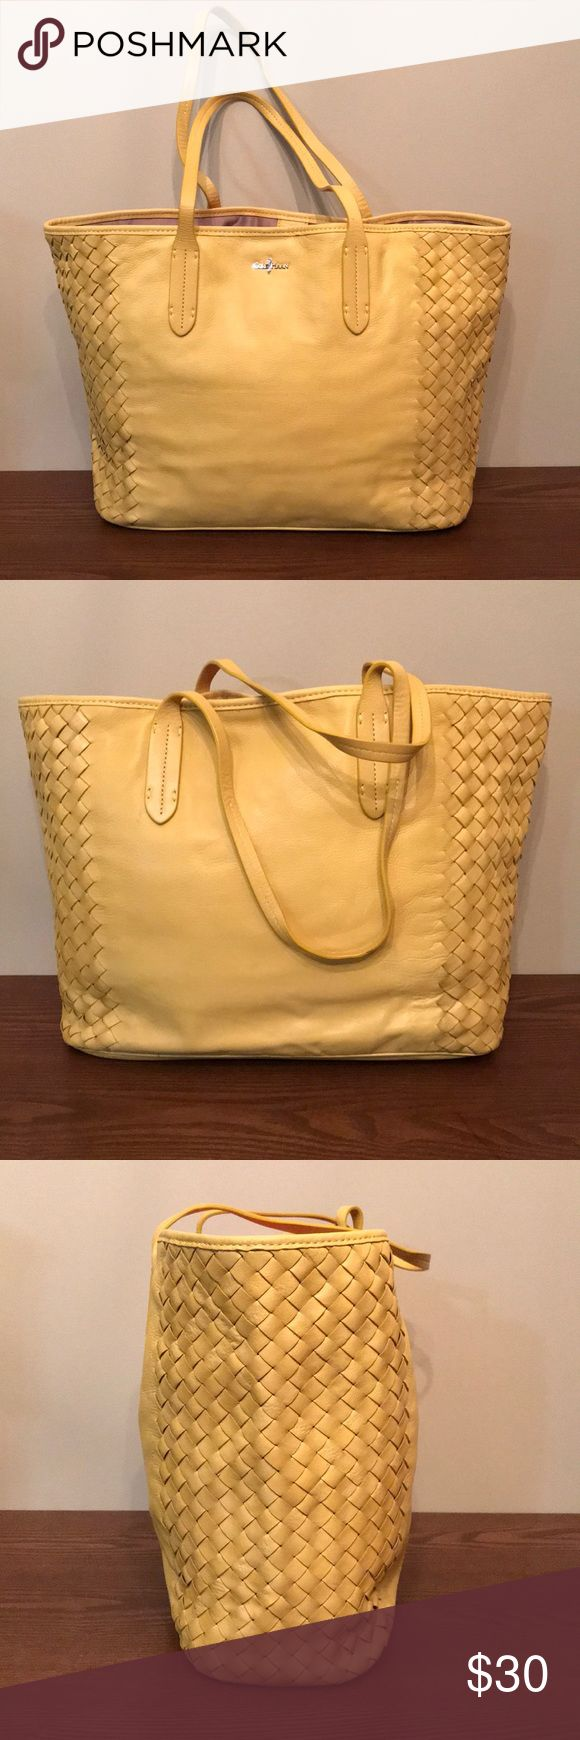 """Cole Haan leather woven tote Yellow soft leather with woven detail on the sides. Inside: 2 small pockets, 1 large zip pocket, key hook. Satin lining. 9"""" straps. Magnetic snap closure. 11"""" high x 18"""" wide x 5"""" deep. Minimal use, no visible wear. Dust bag included. Cole Haan Bags Totes"""